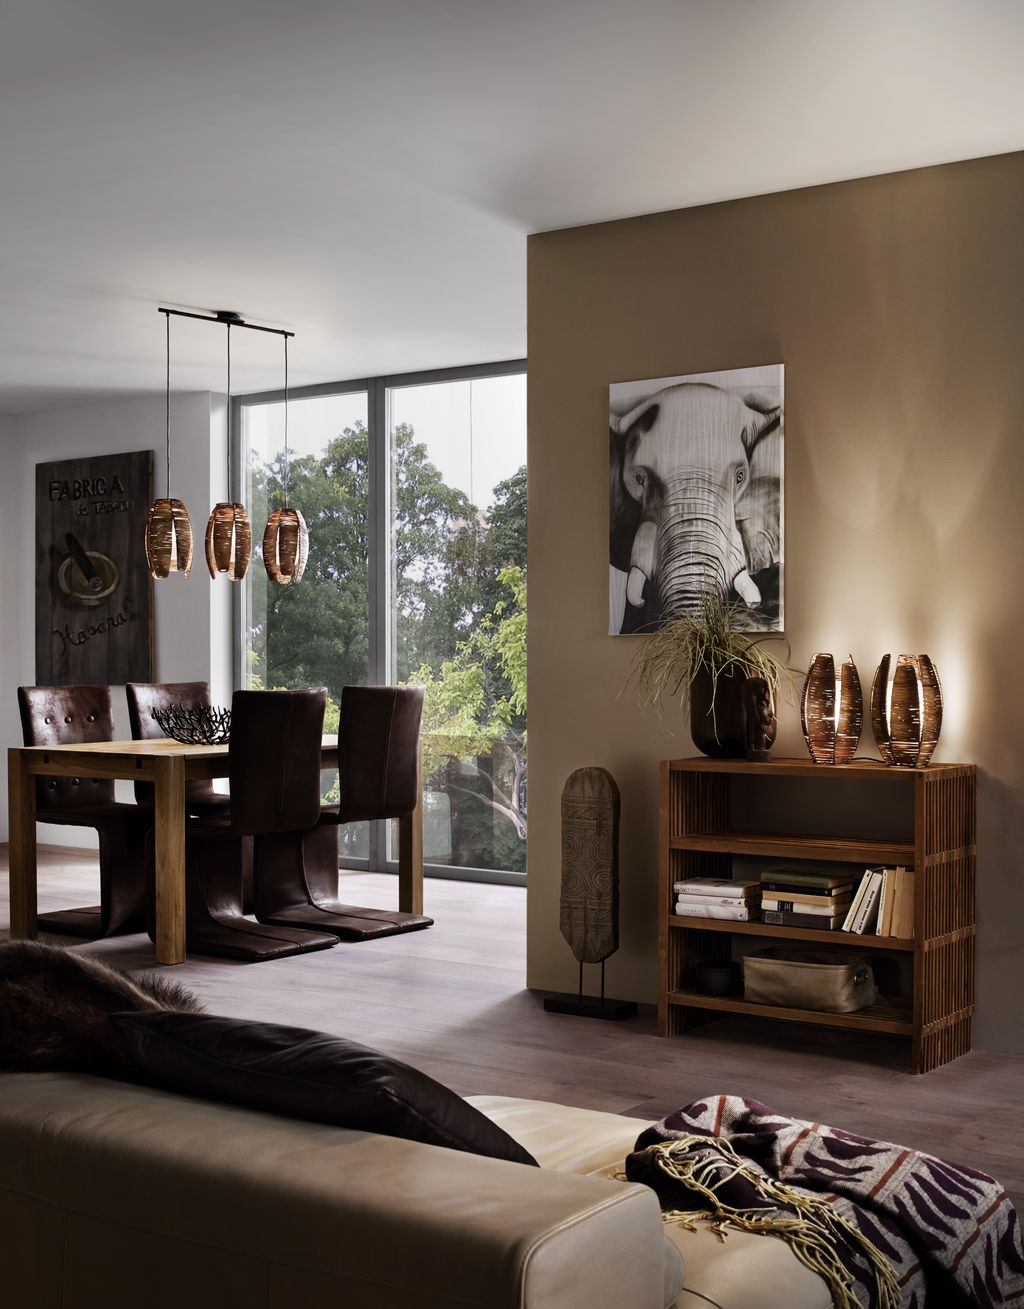 eglo 91014 mongu e27 tischleuchte braun. Black Bedroom Furniture Sets. Home Design Ideas